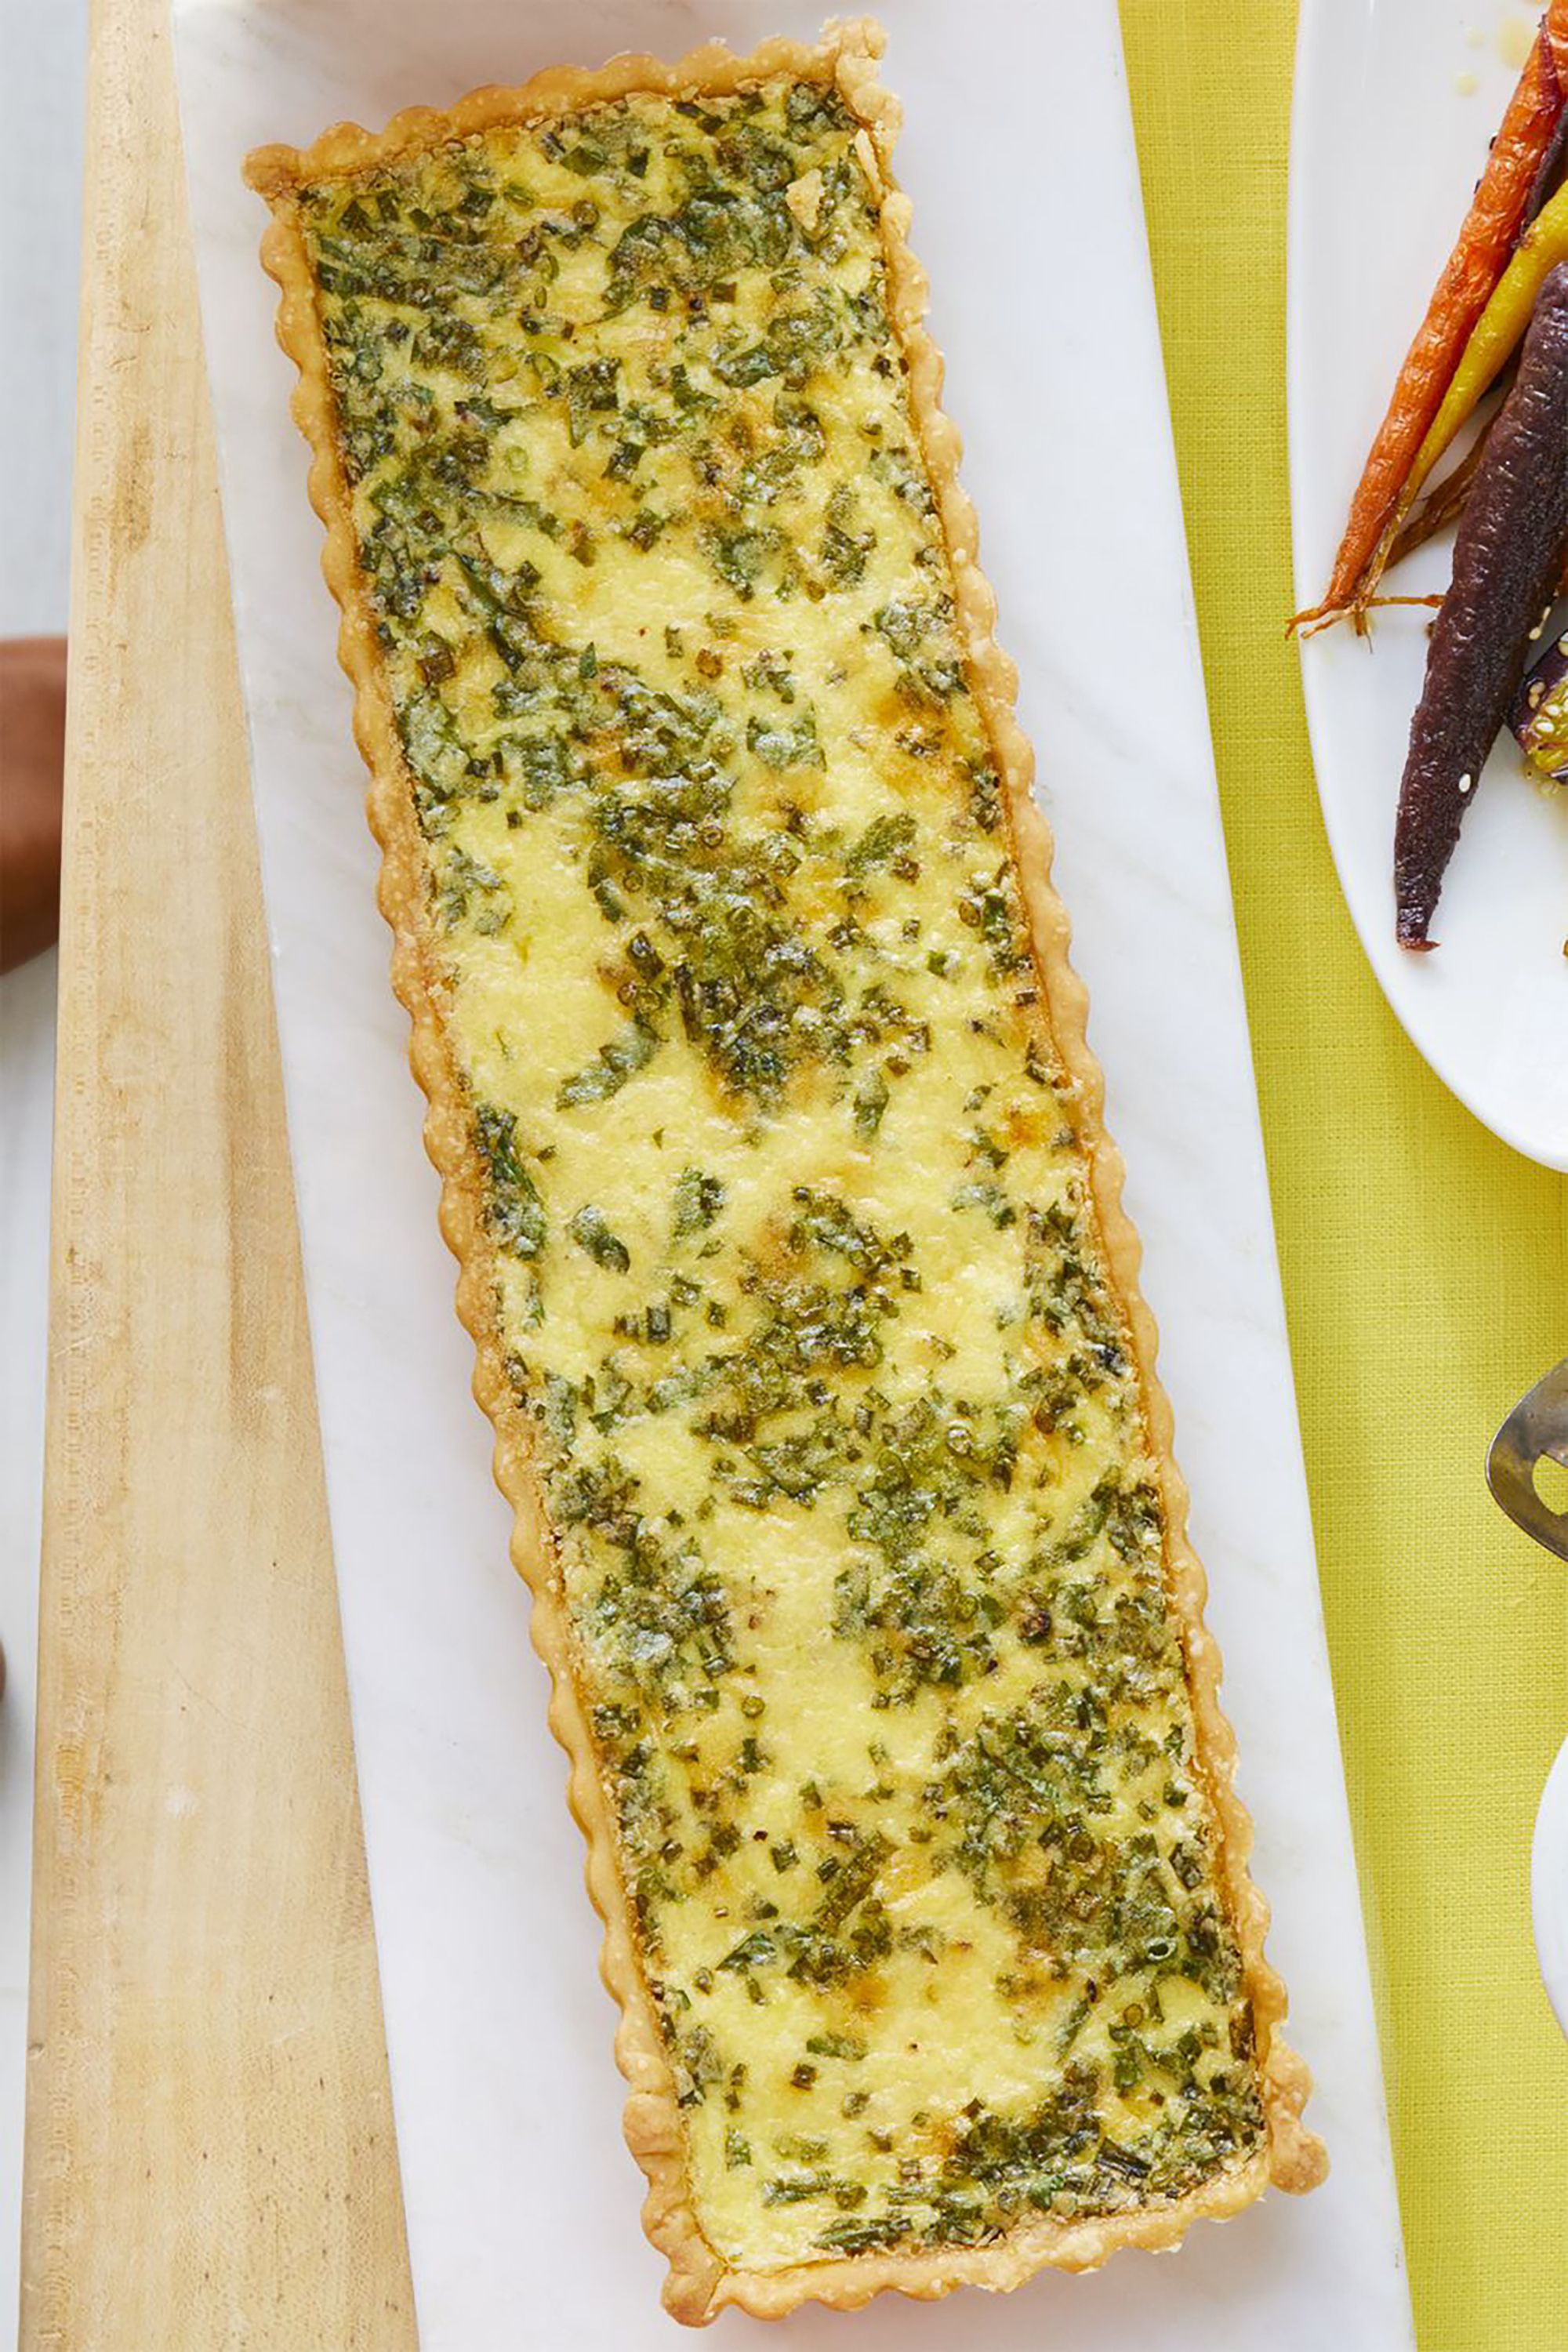 Cheese-and-Herb Quiche Kid-Friendly Breakfast Recipe